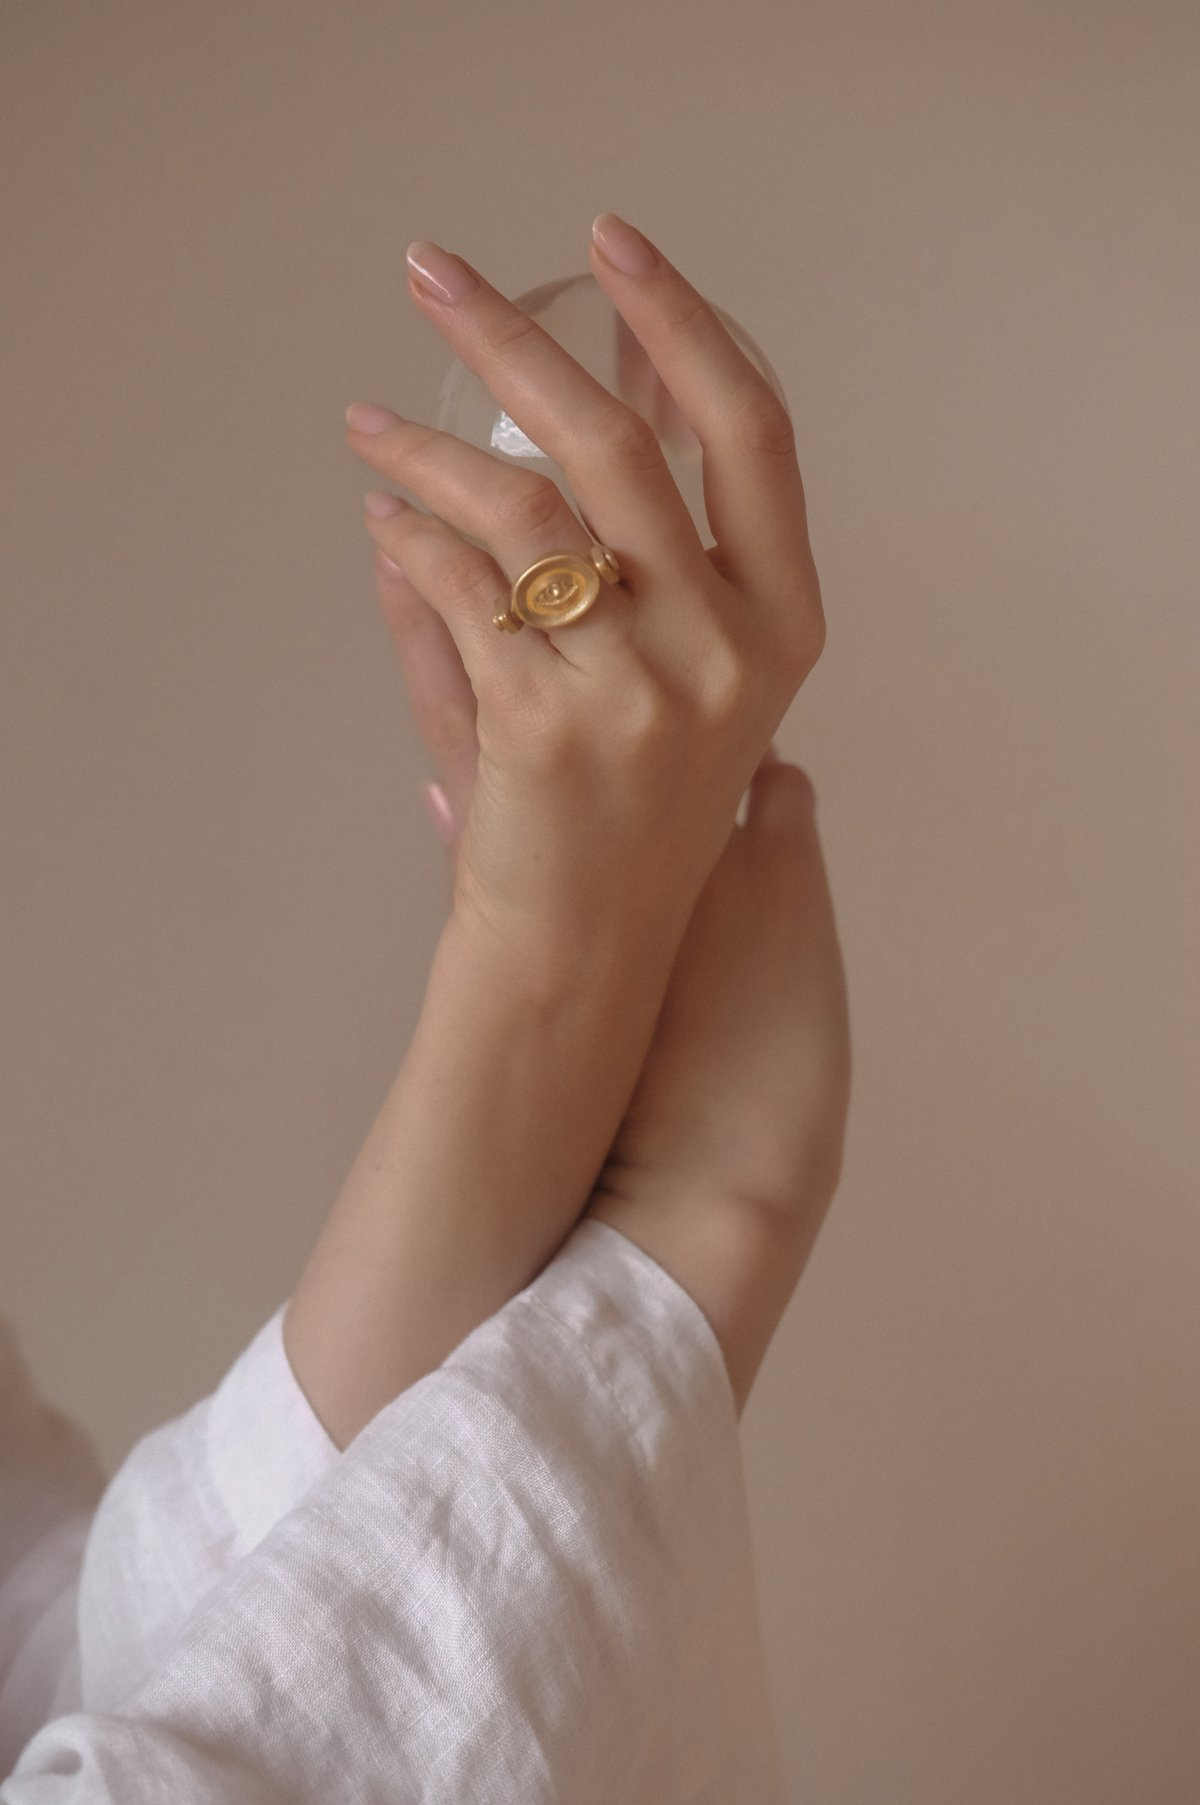 AS ABOVE, SO BELOW  SWIVEL RING,  from $690